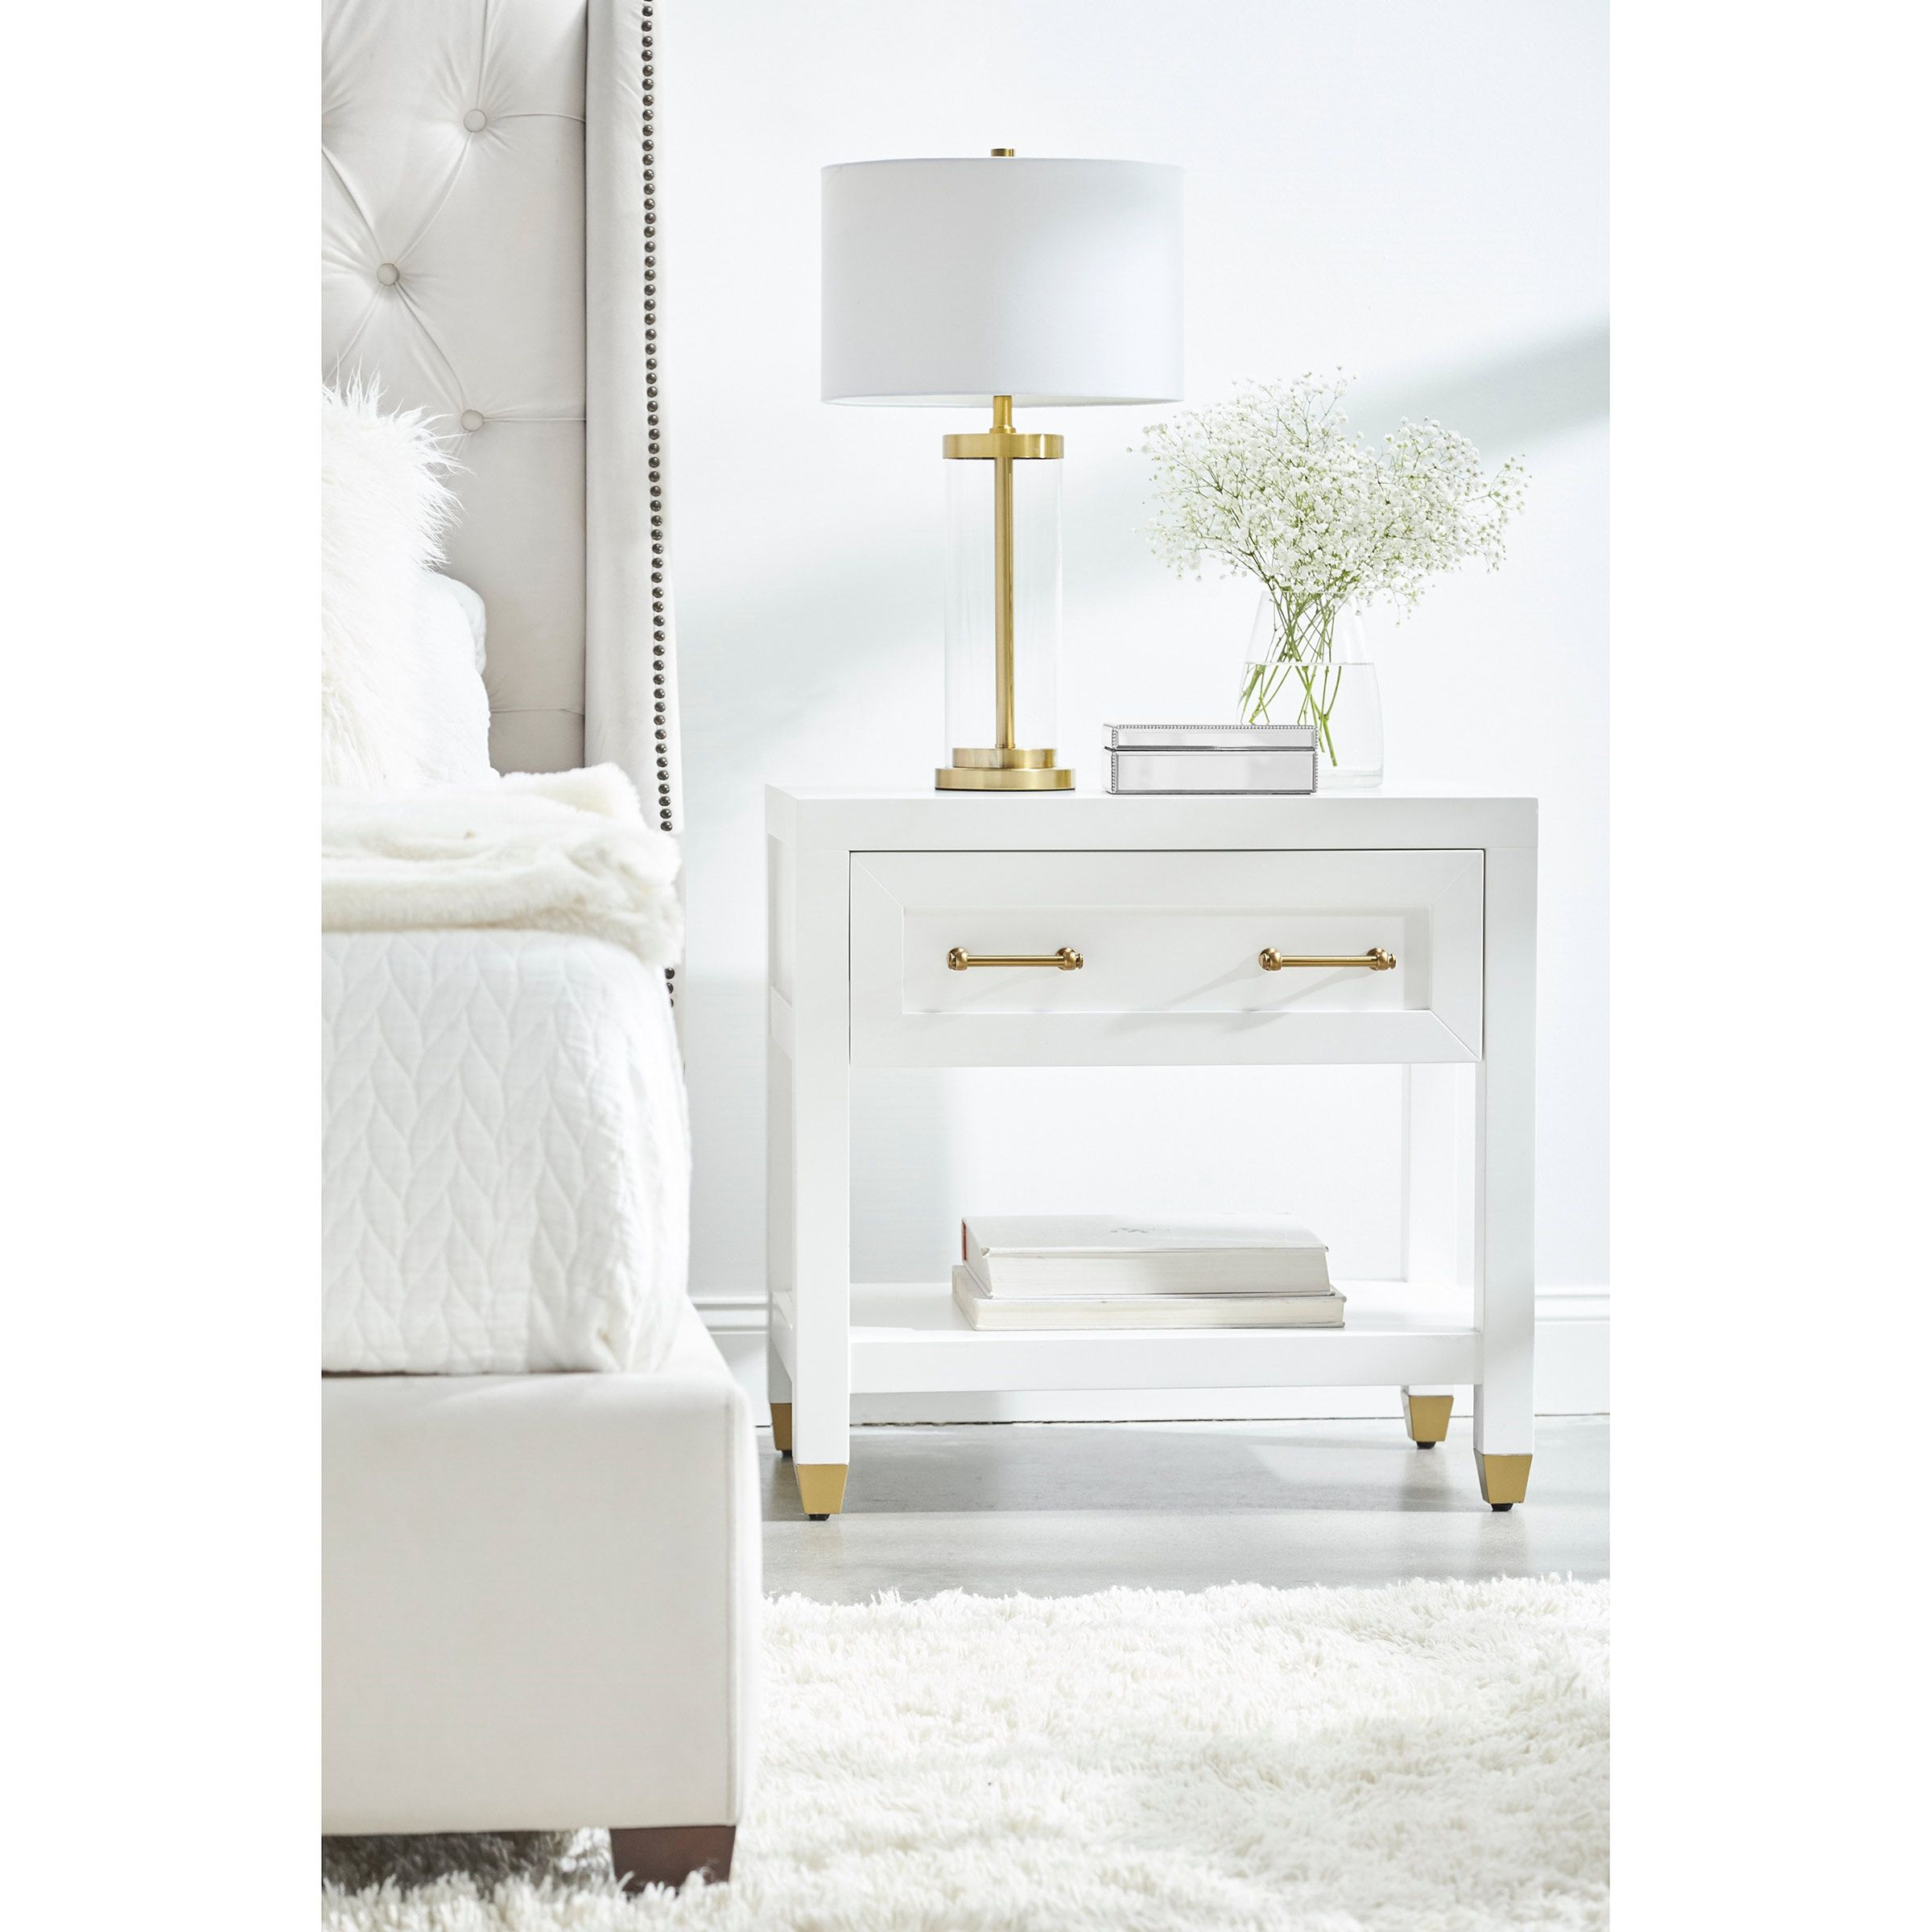 Stacy Modern Classic 1 Drawer Brass Accent White Nightstand Gold Bedroom Decor White Gold Bedroom White Nightstand